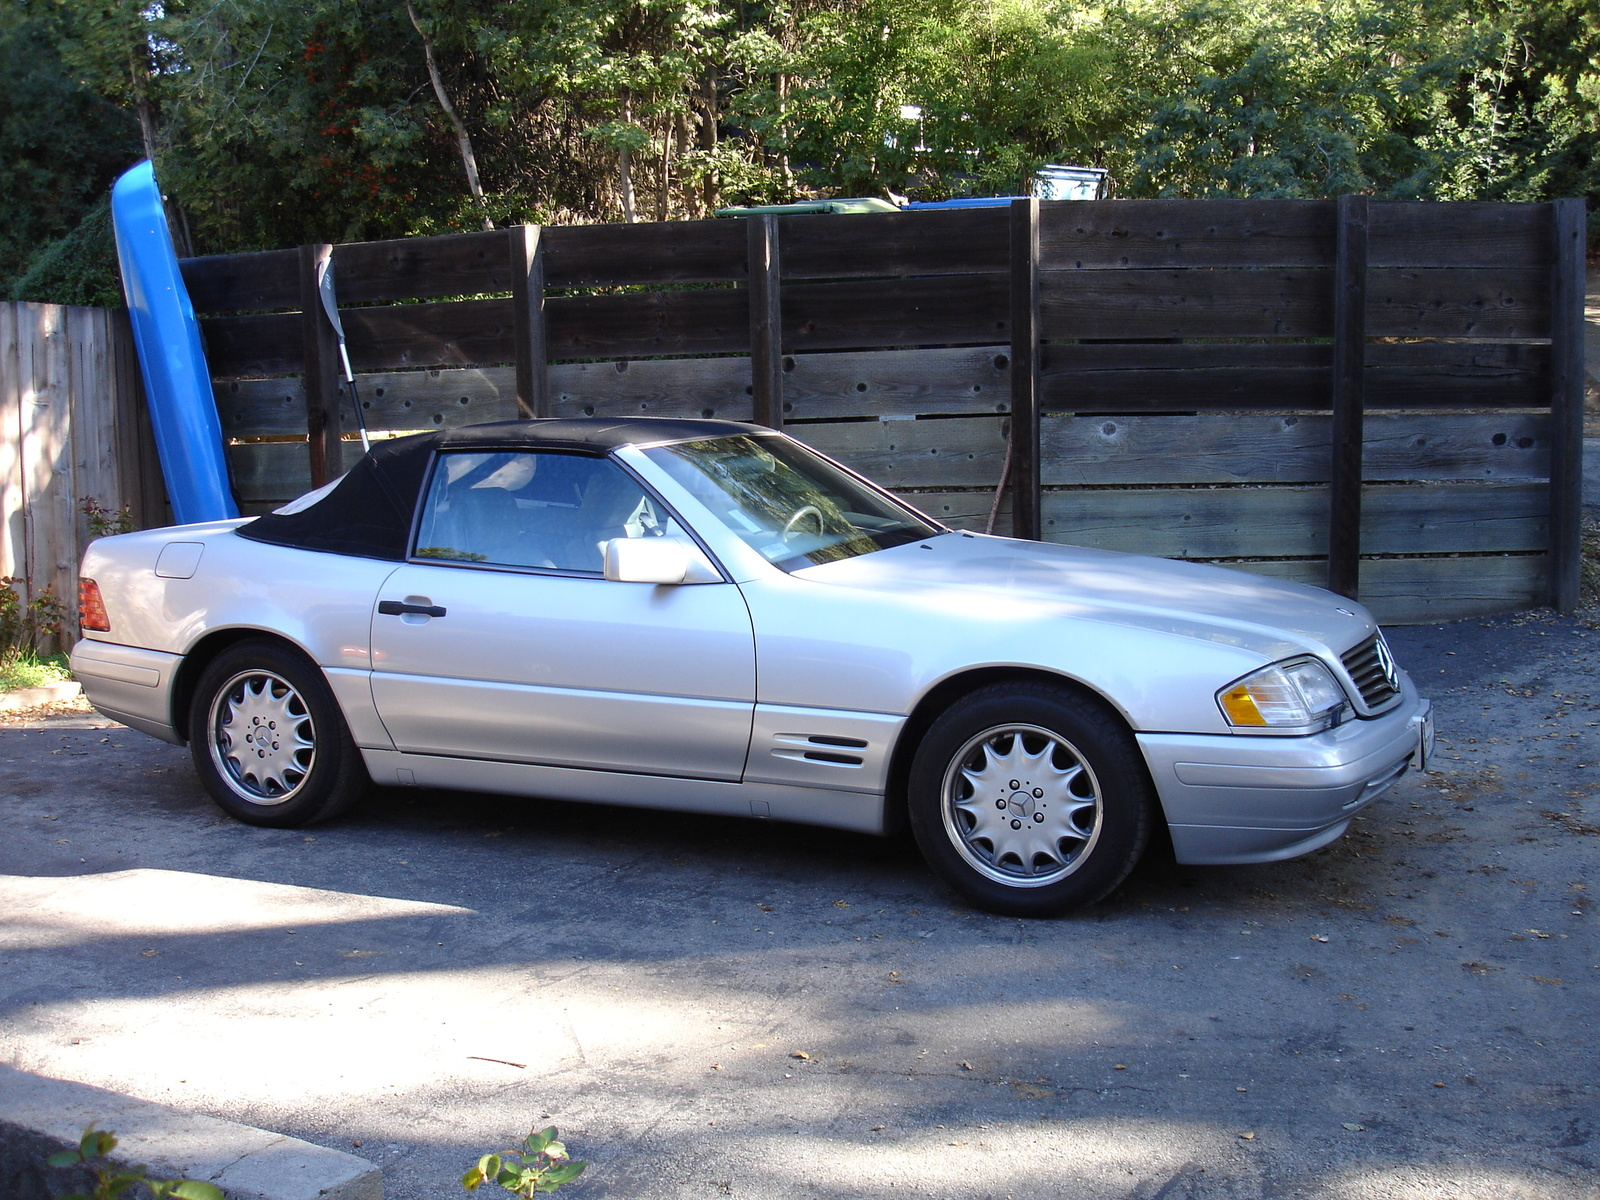 1996 mercedes benz sl class pictures cargurus for 1996 mercedes benz